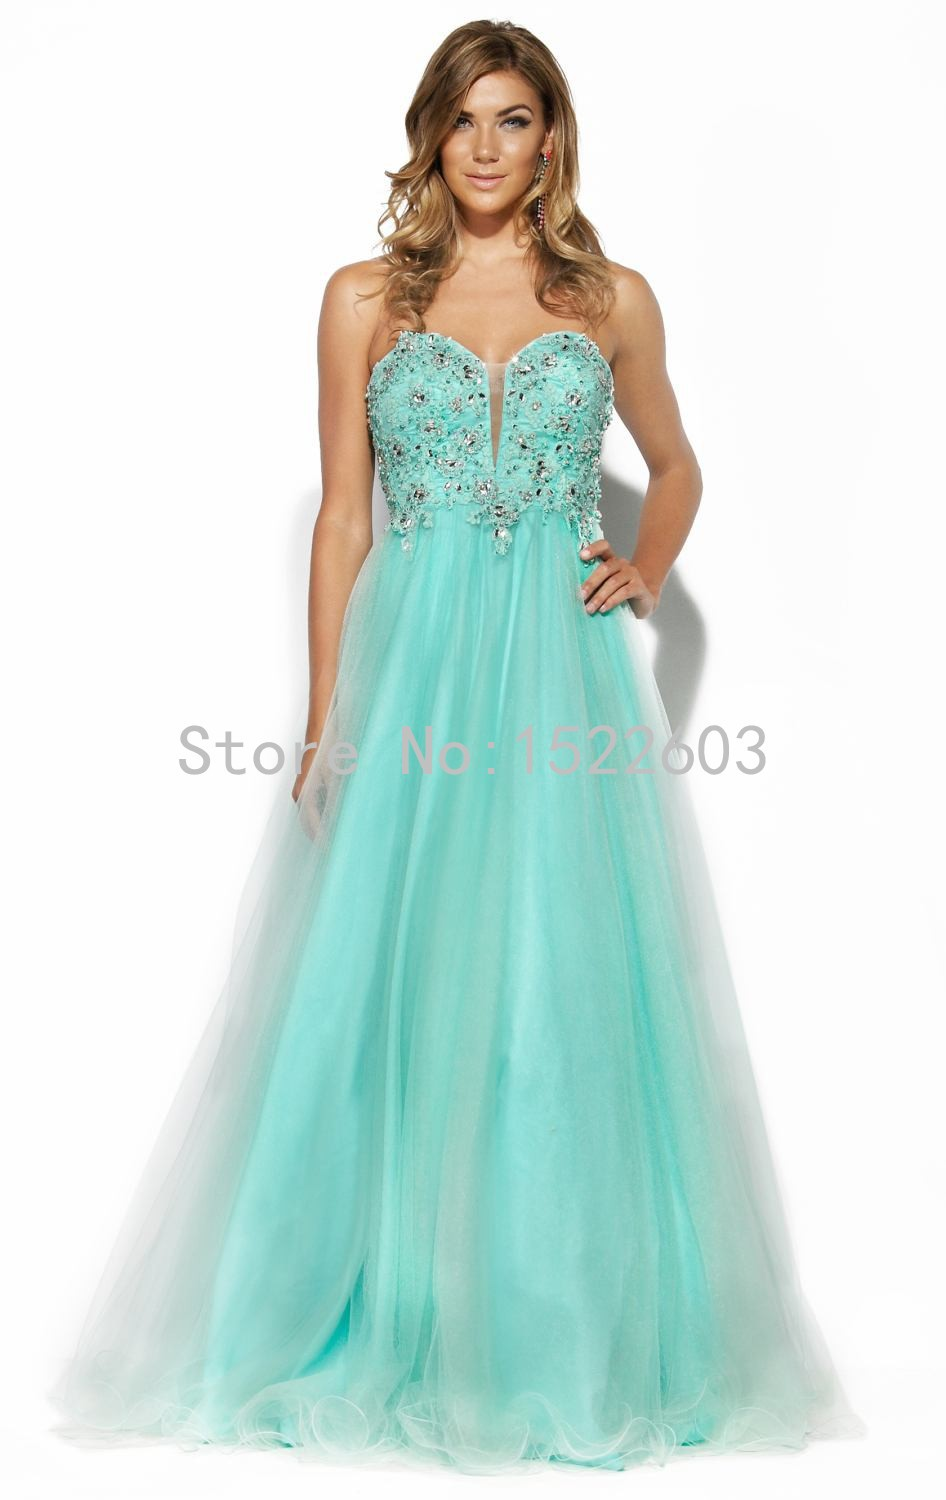 2015 Alluring Sweetheart Mint Green Sleeveless Long Prom Dresses Tulle Beading Formal Sexy Evening Gown Custom party Dress A2097